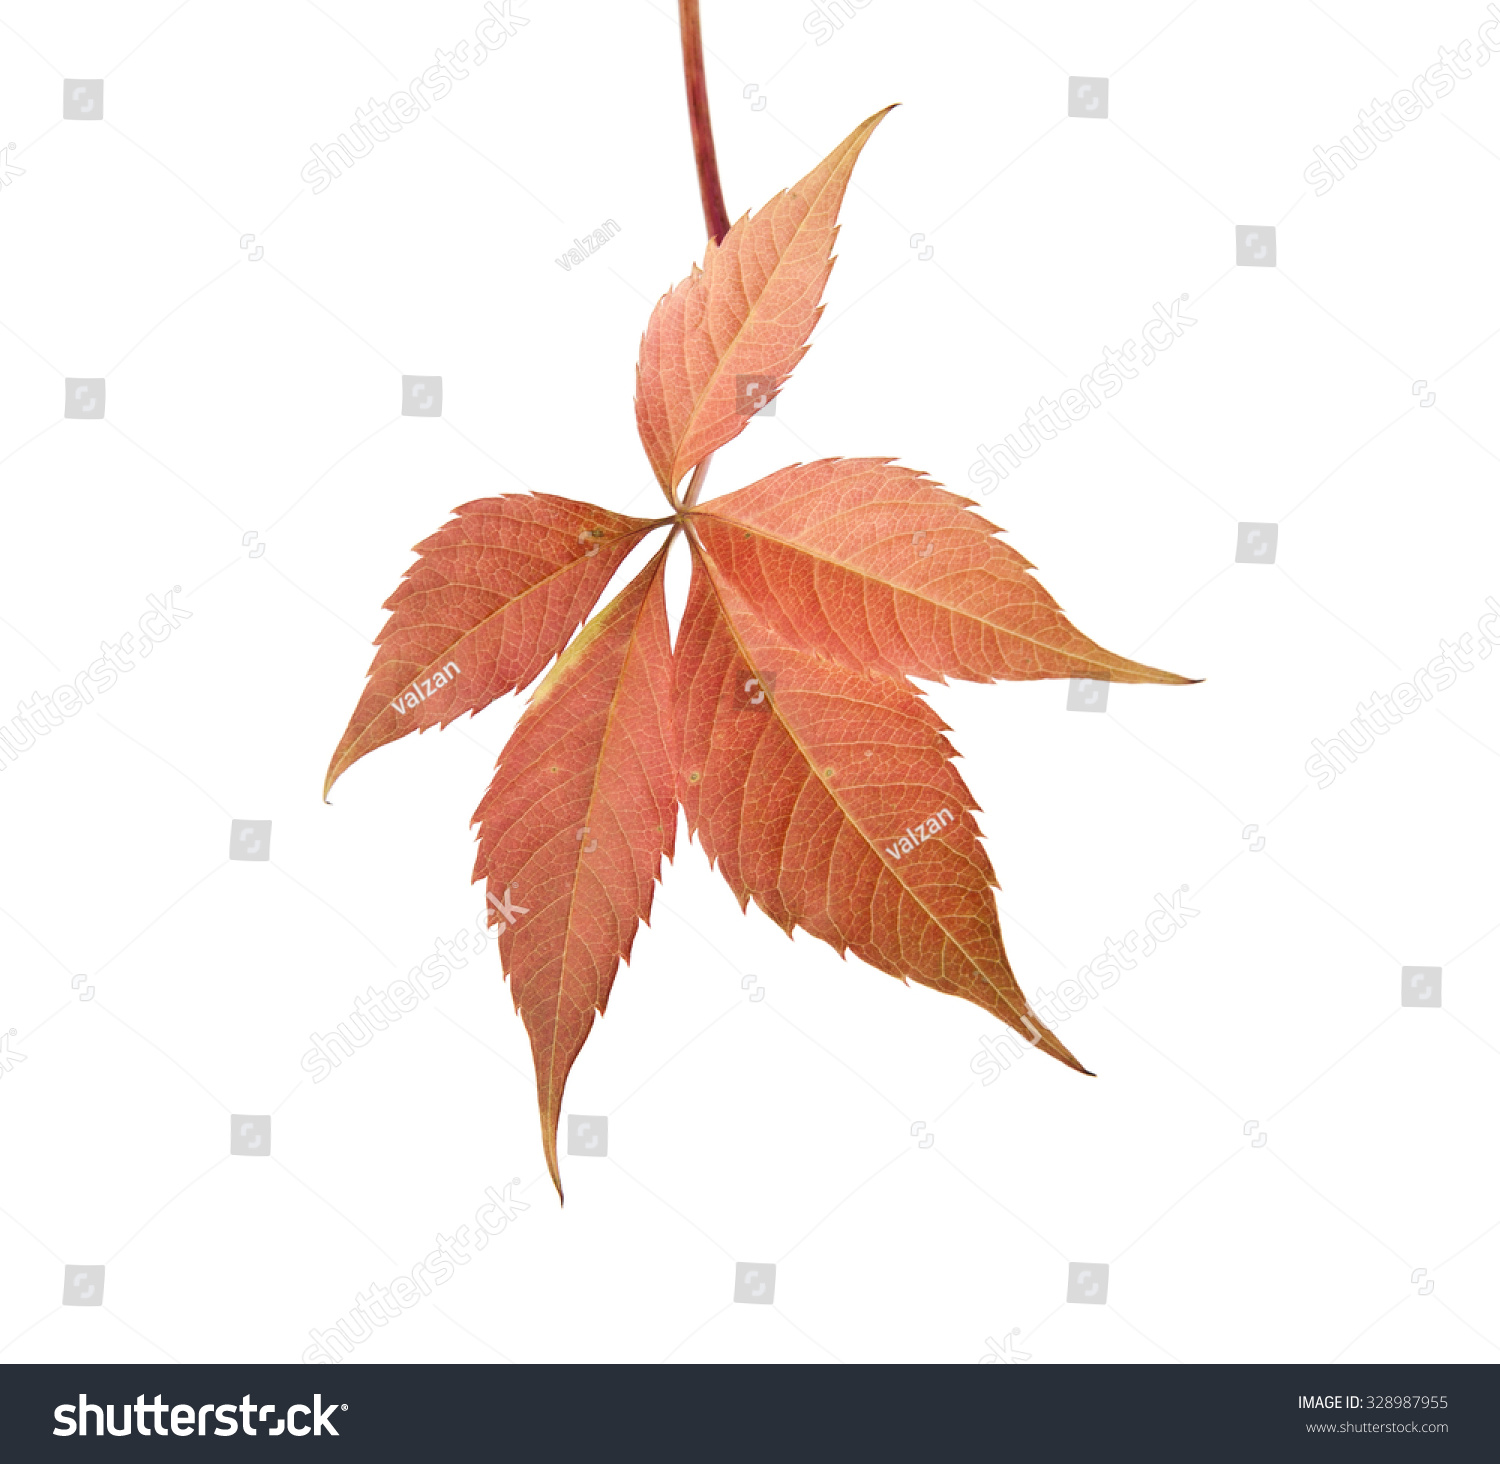 autumn leaves of vine on a white background #328987955